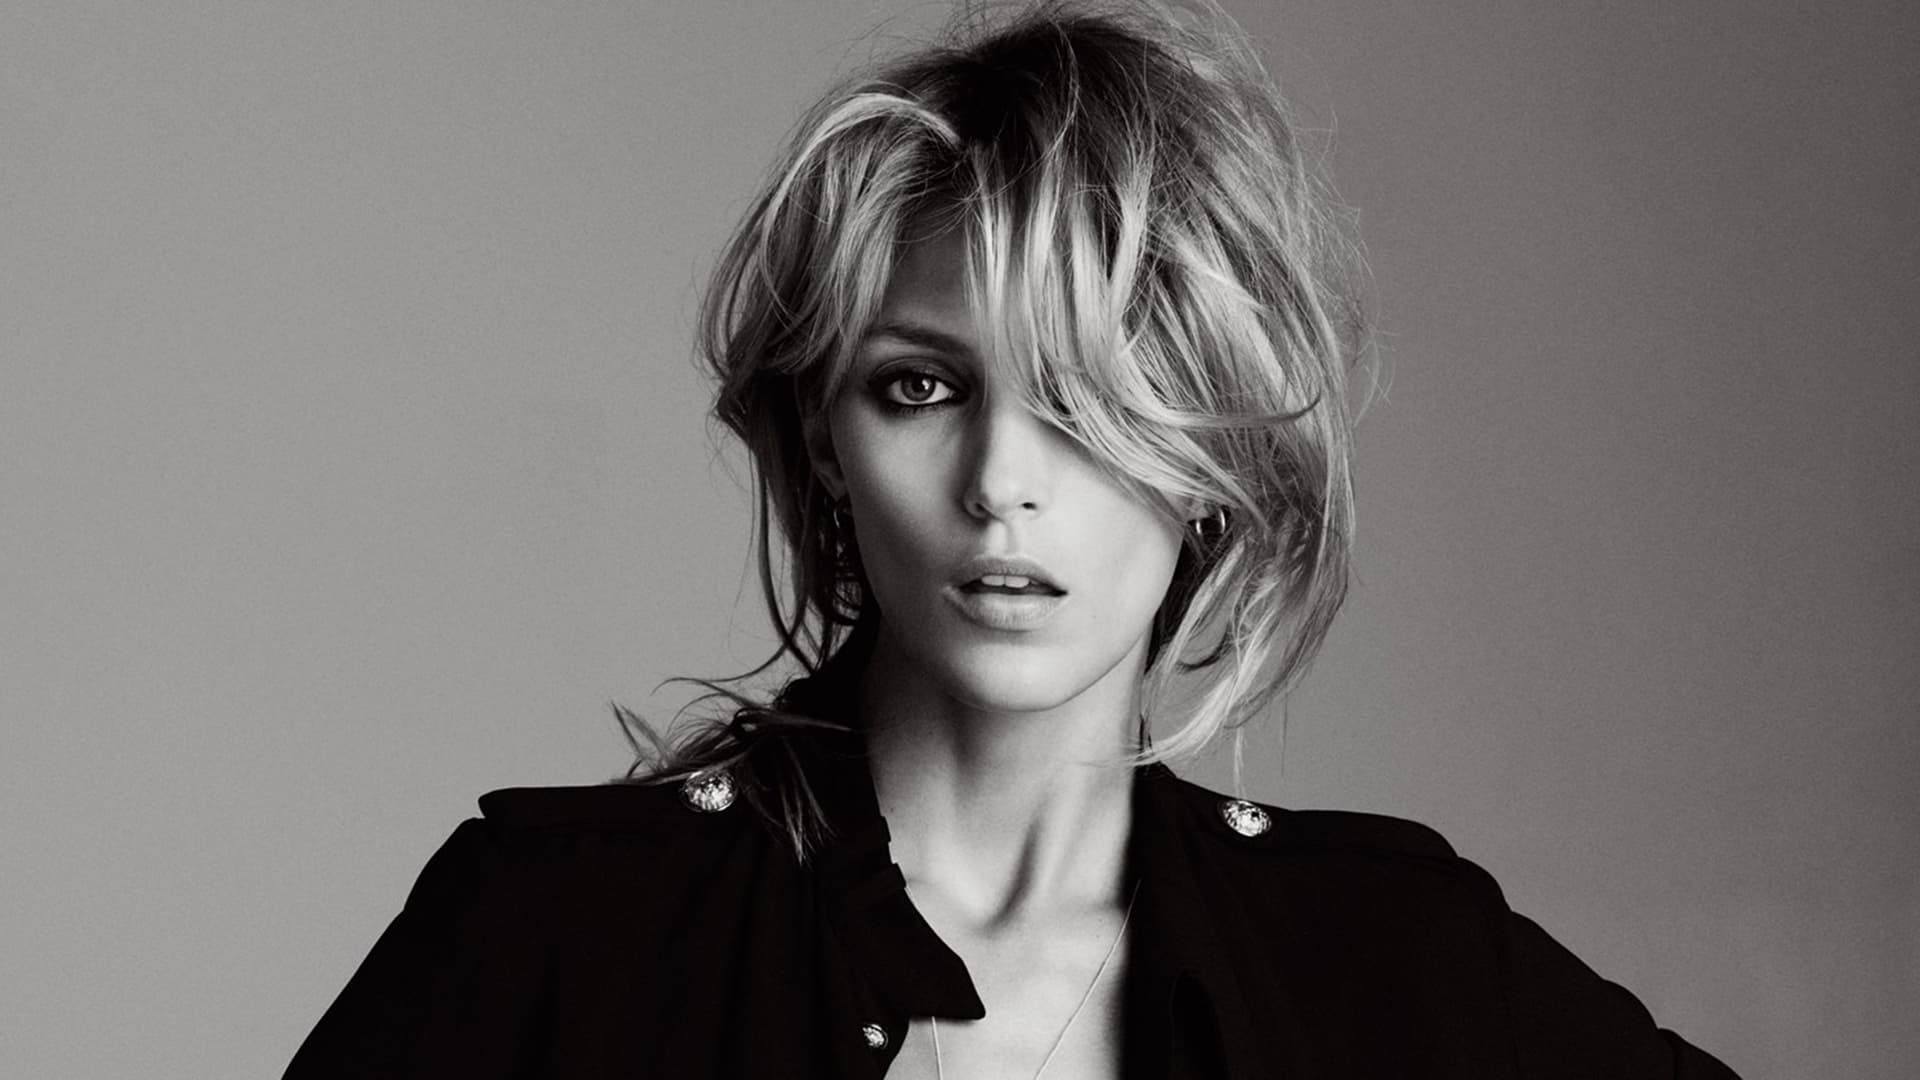 Wallpaper Iphone 5 Anime Anja Rubik Wallpapers Hd High Quality Resolution Download